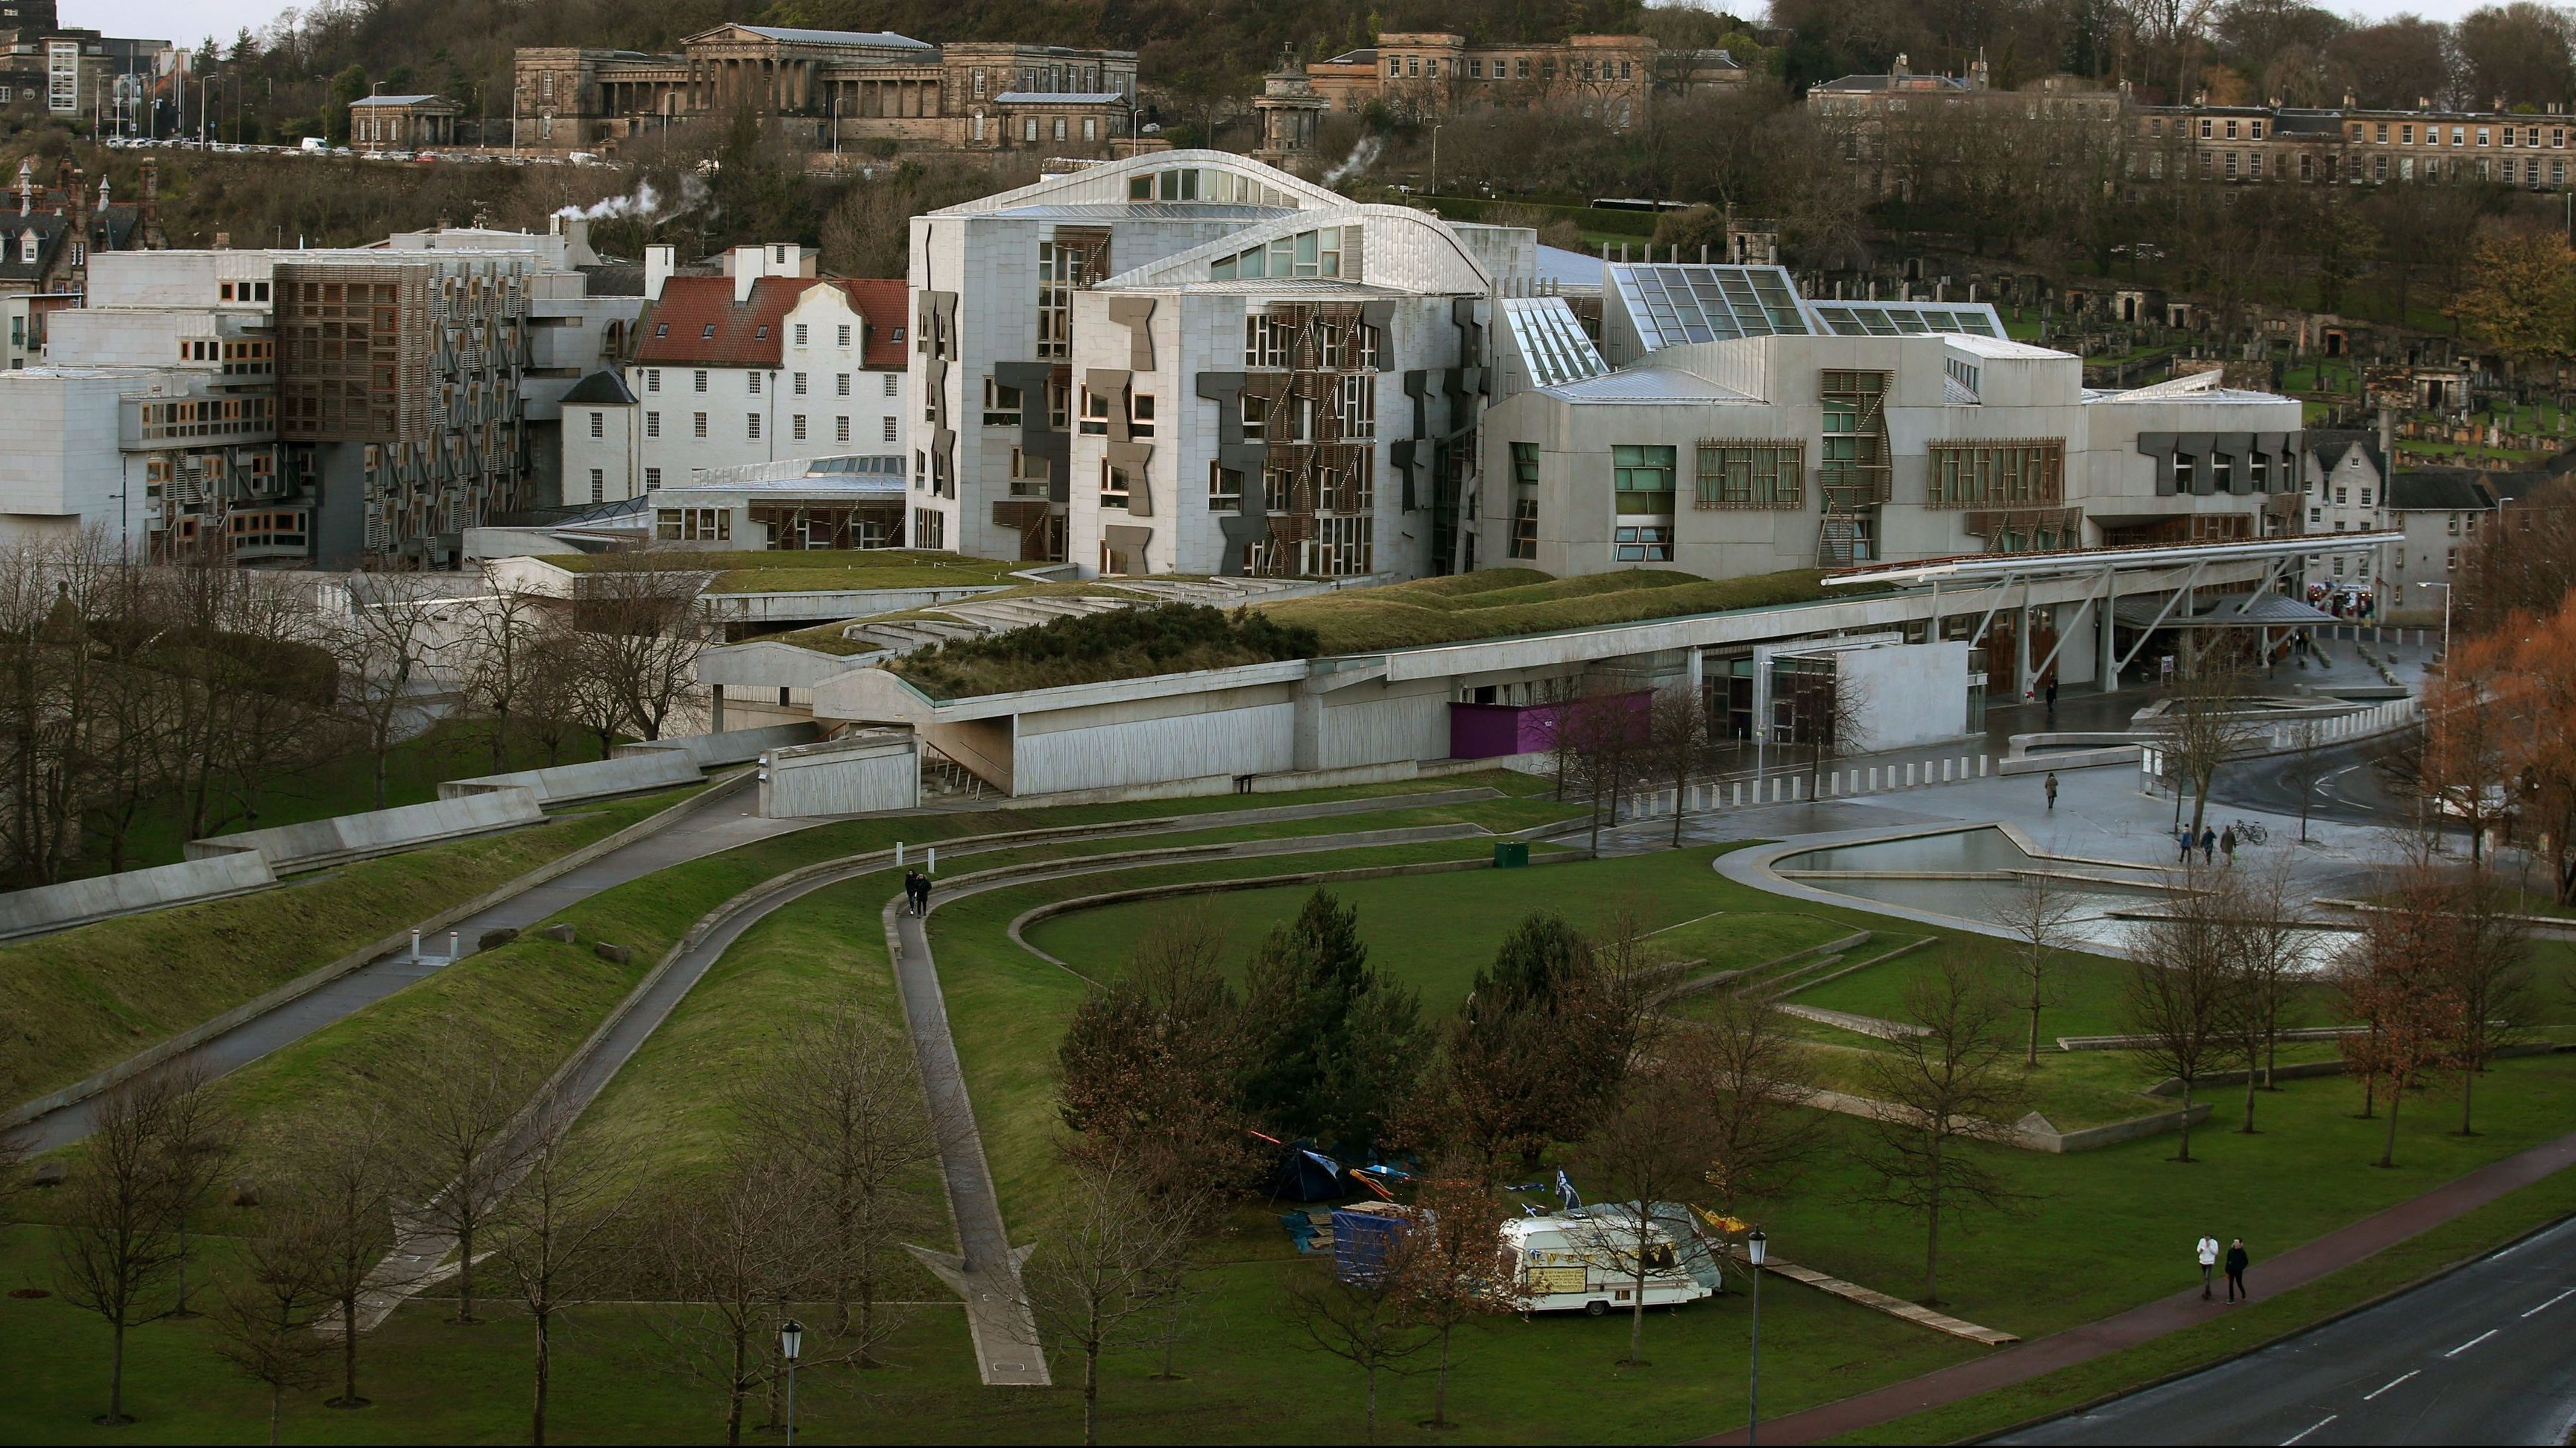 The Independence Camp was established within the grounds of the Scottish Parliament in Edinburgh.